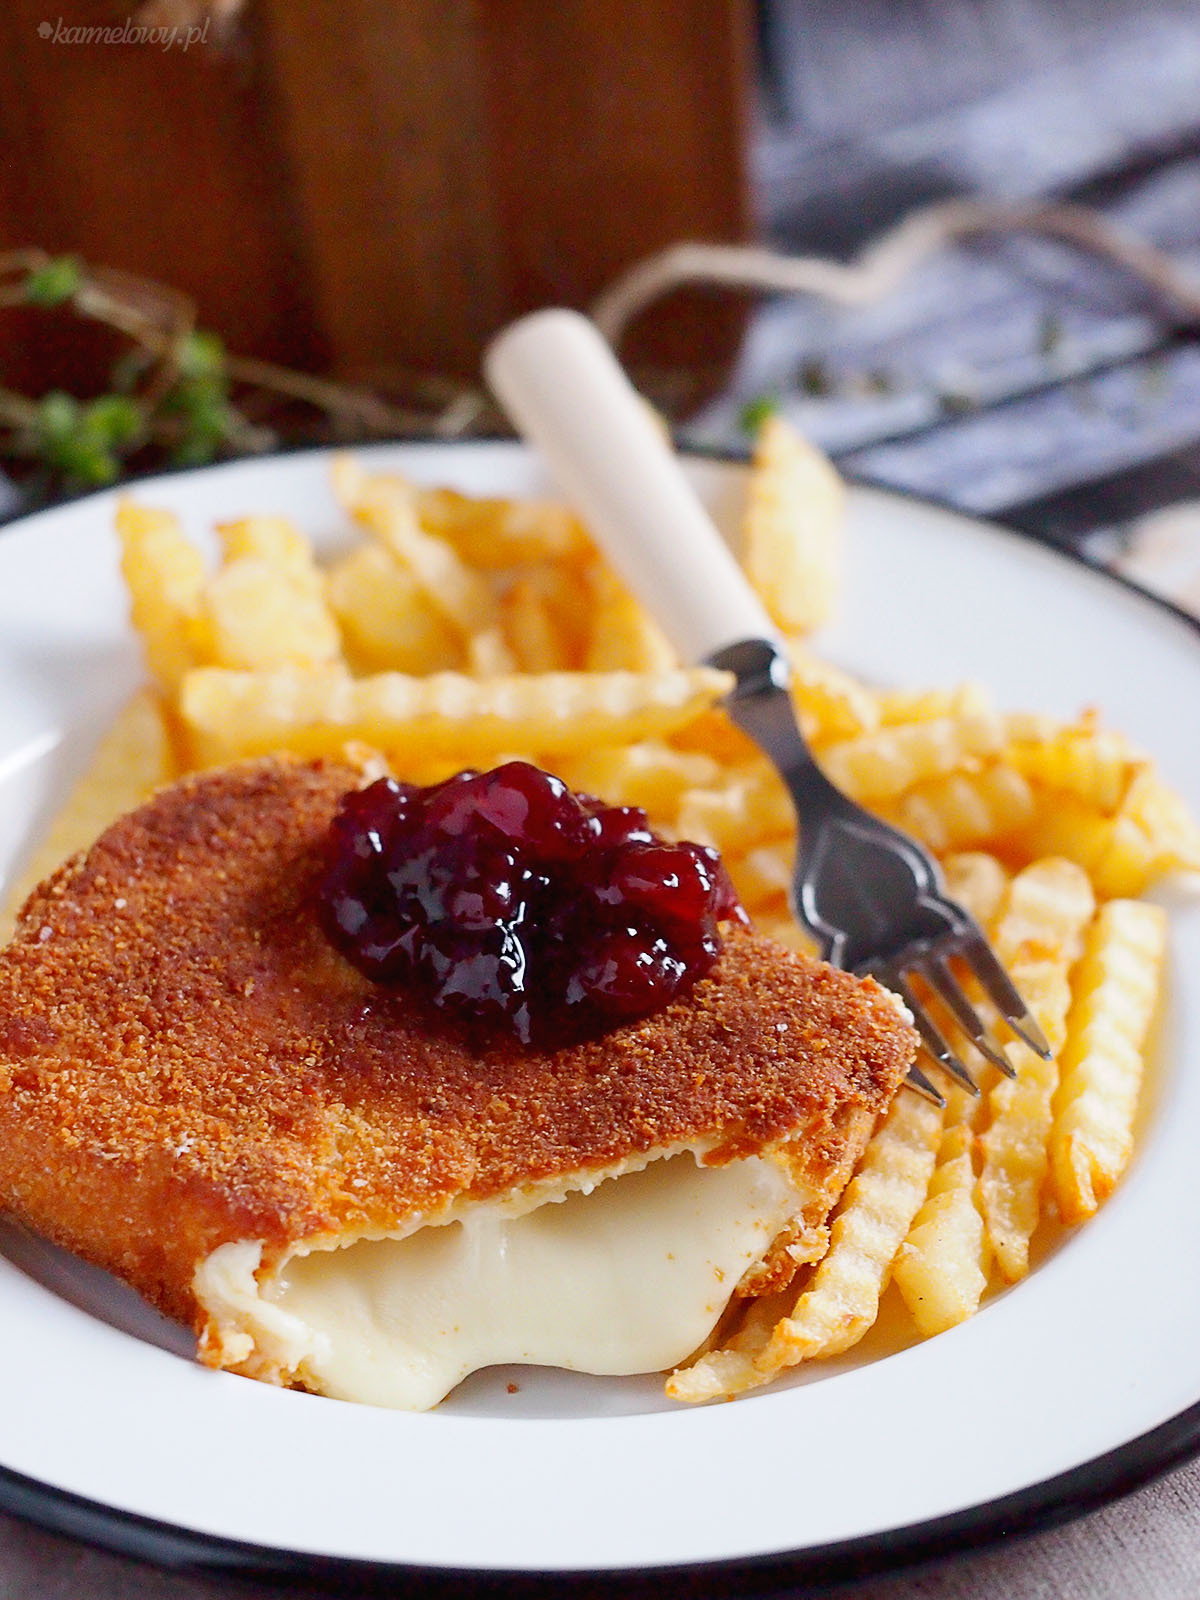 Smażony ser w panierce / Fried cheese